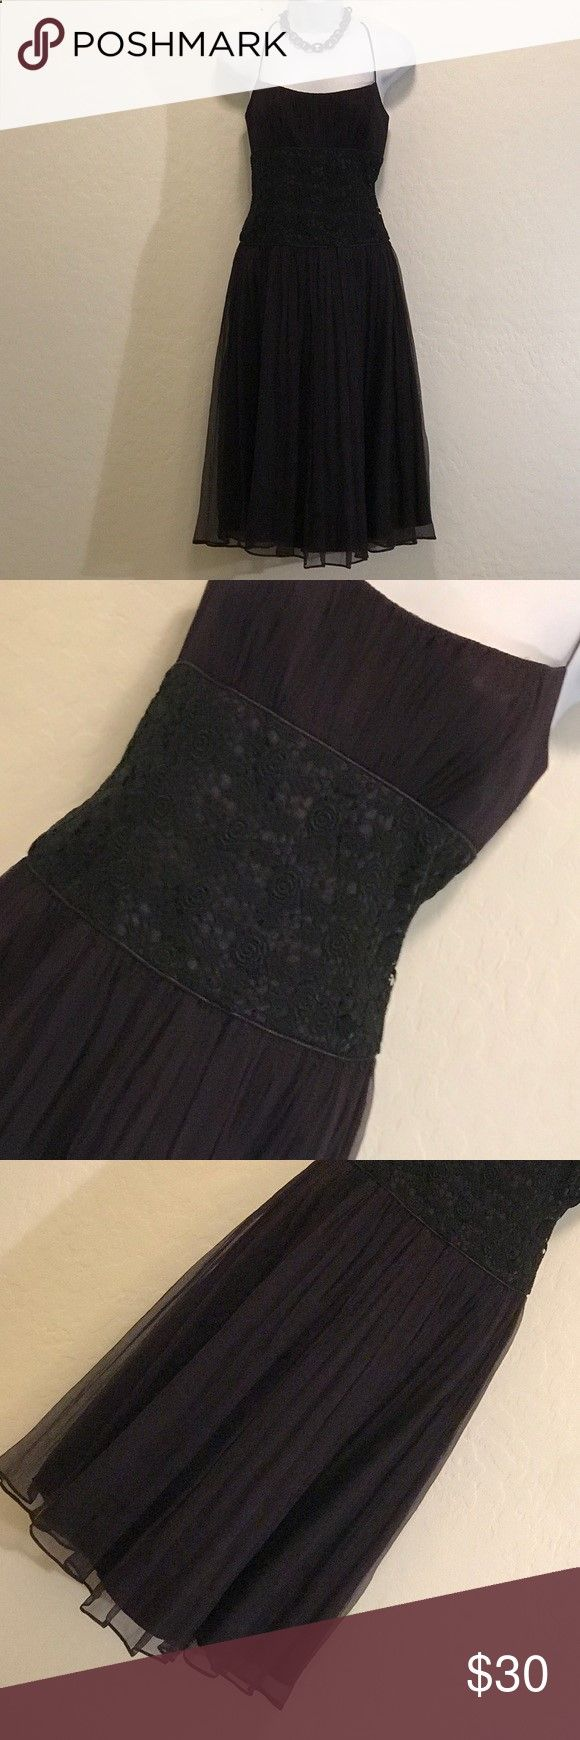 👗 Black Cocktail Dress👗 Never Worn, Back Zipper, Lined, Spaghetti Straps, Rosebud Waist Embroidery, Faux Pleats, Flare. Laundry by Shelli Segal Dresses